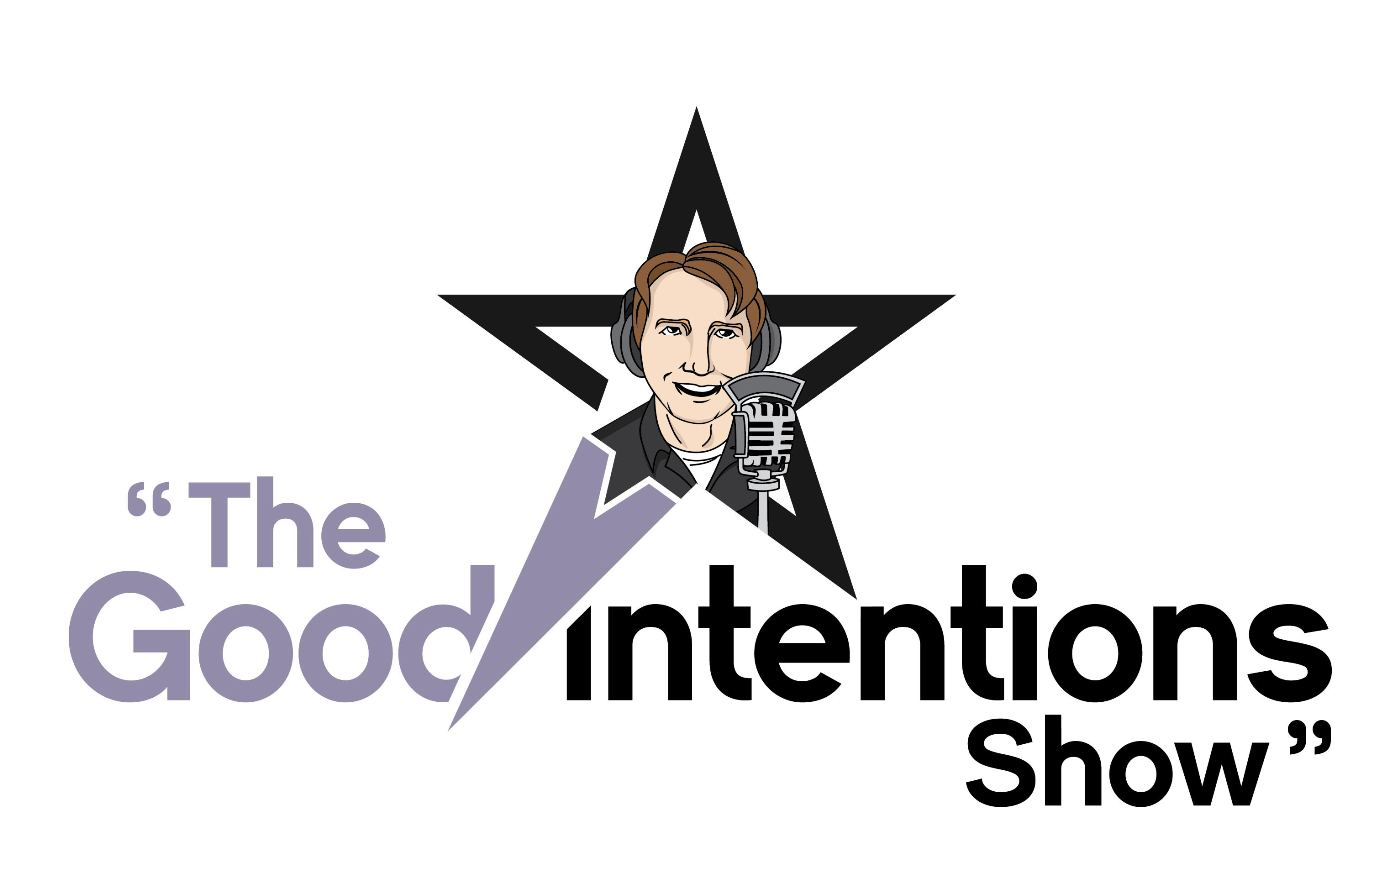 good_intentions_show_logo.1400